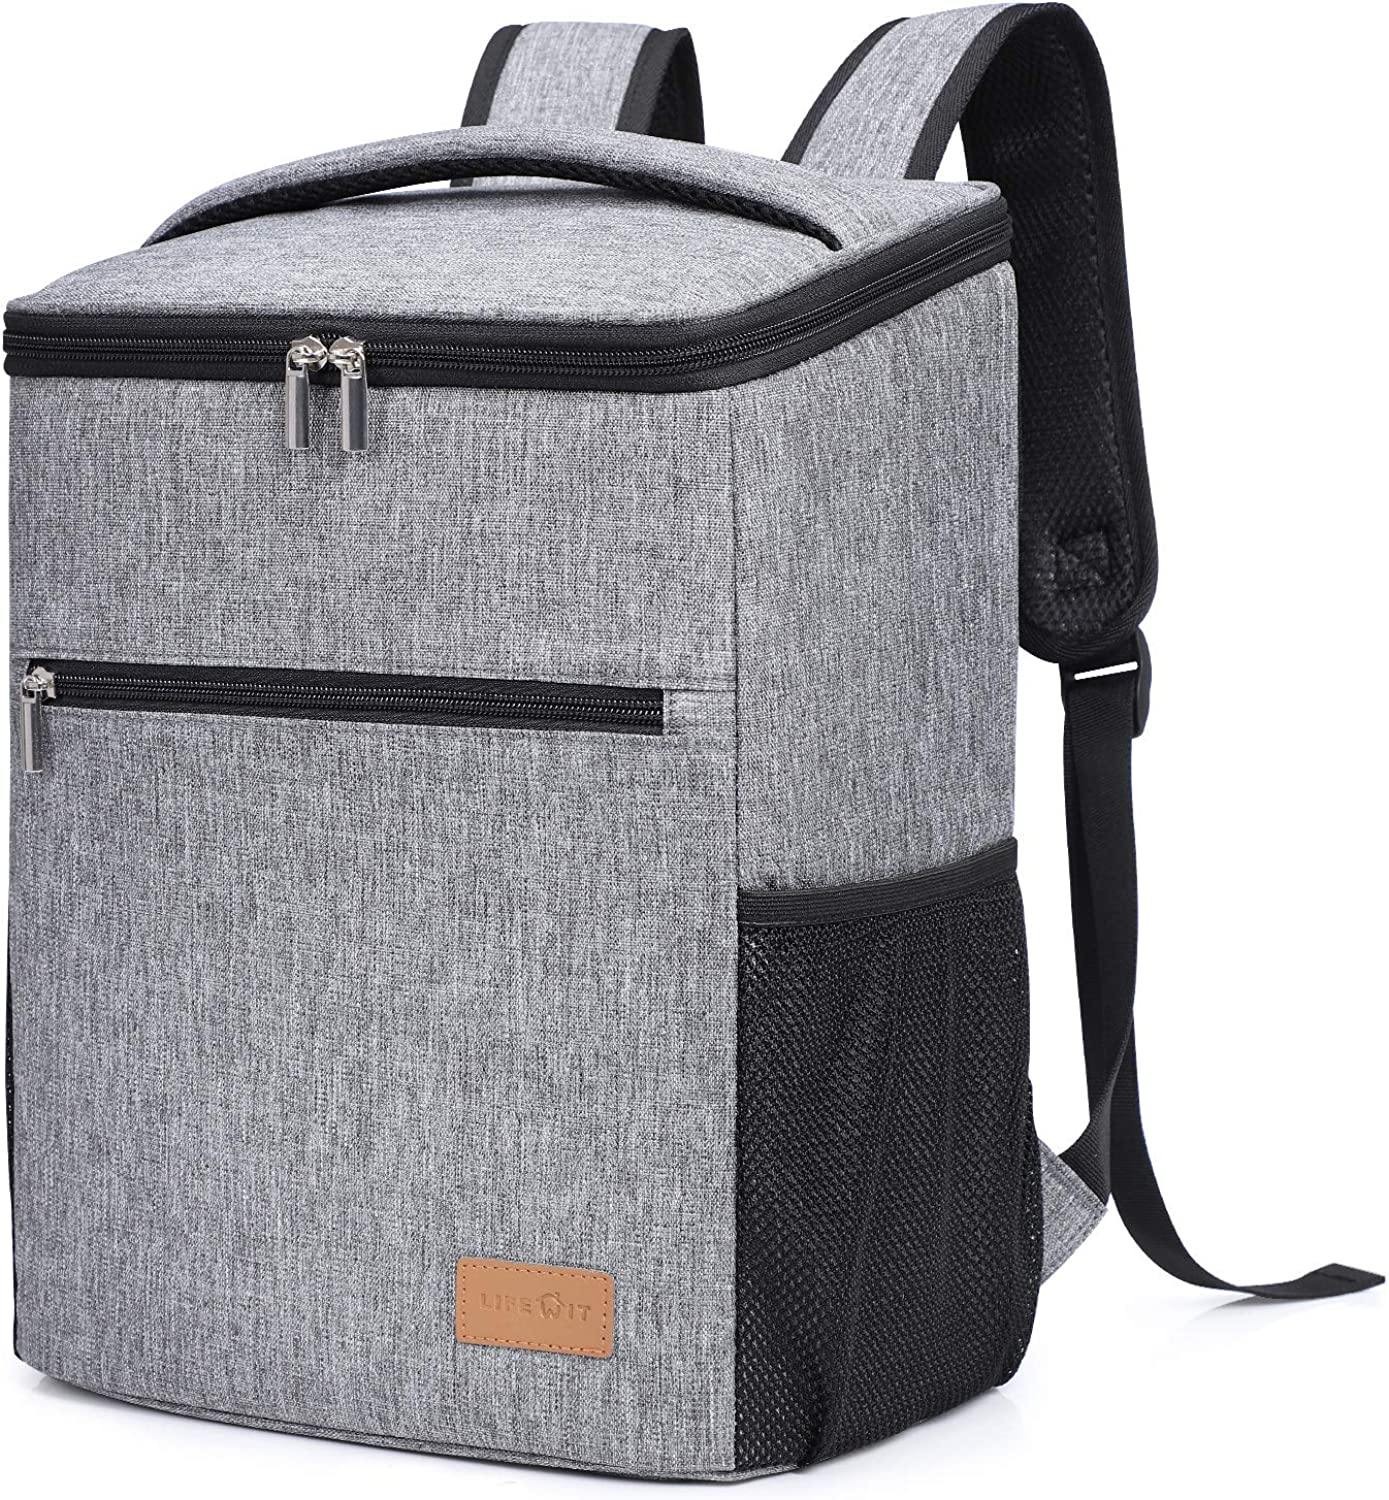 Lifewit Insulated Cooler Bag Backpack